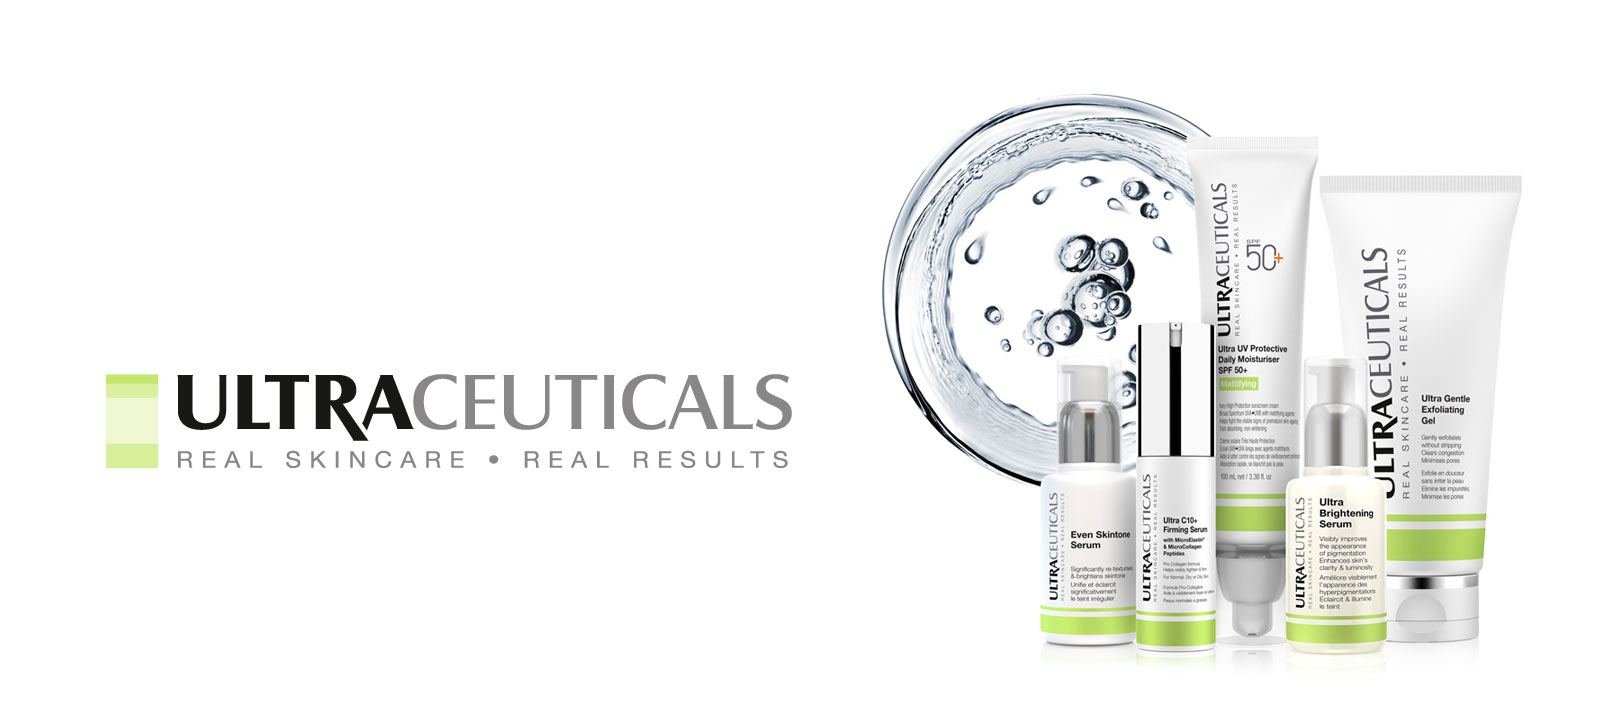 buy ultraceuticals at peaches beauty salon kerikeri new zealand